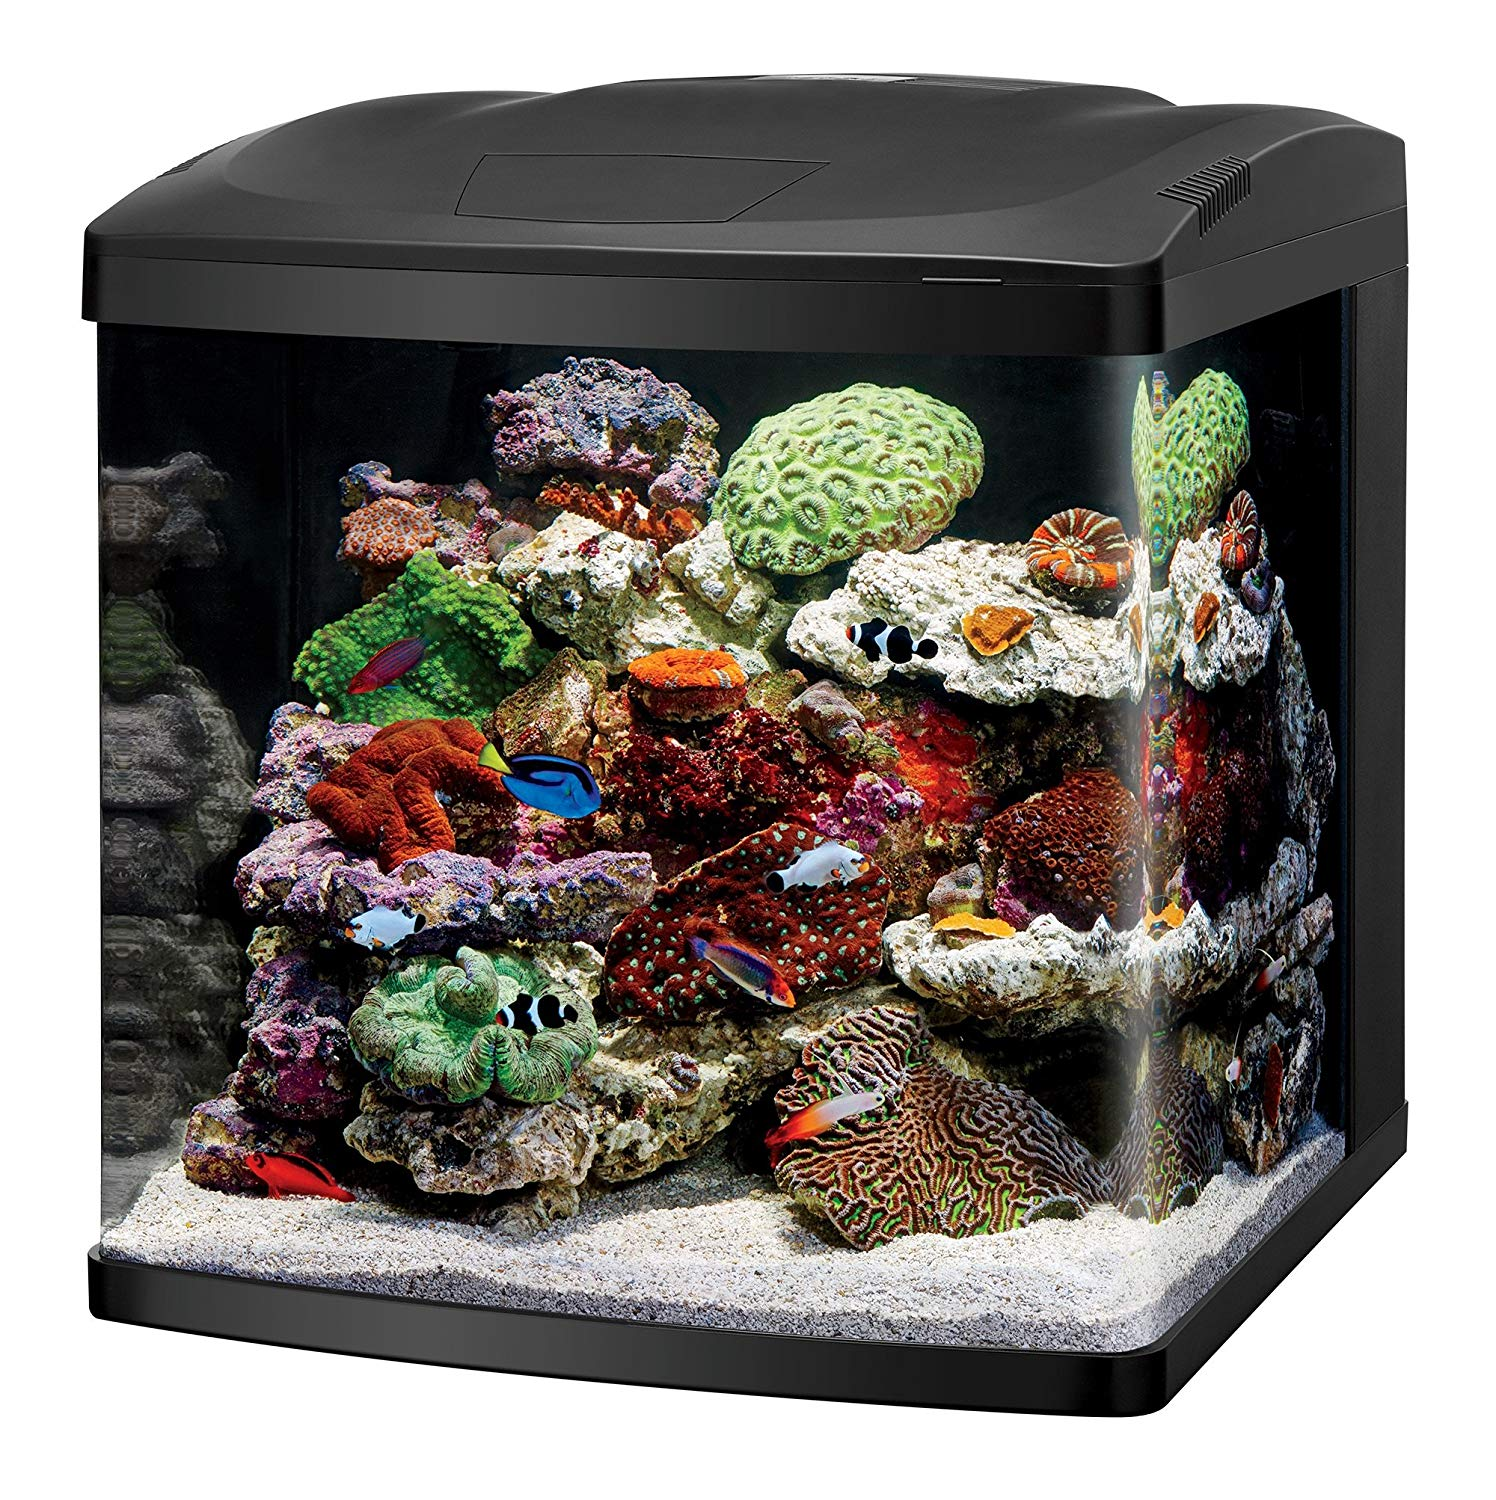 Coralife LED Biocube Aquarium review by www.puppyurl.com